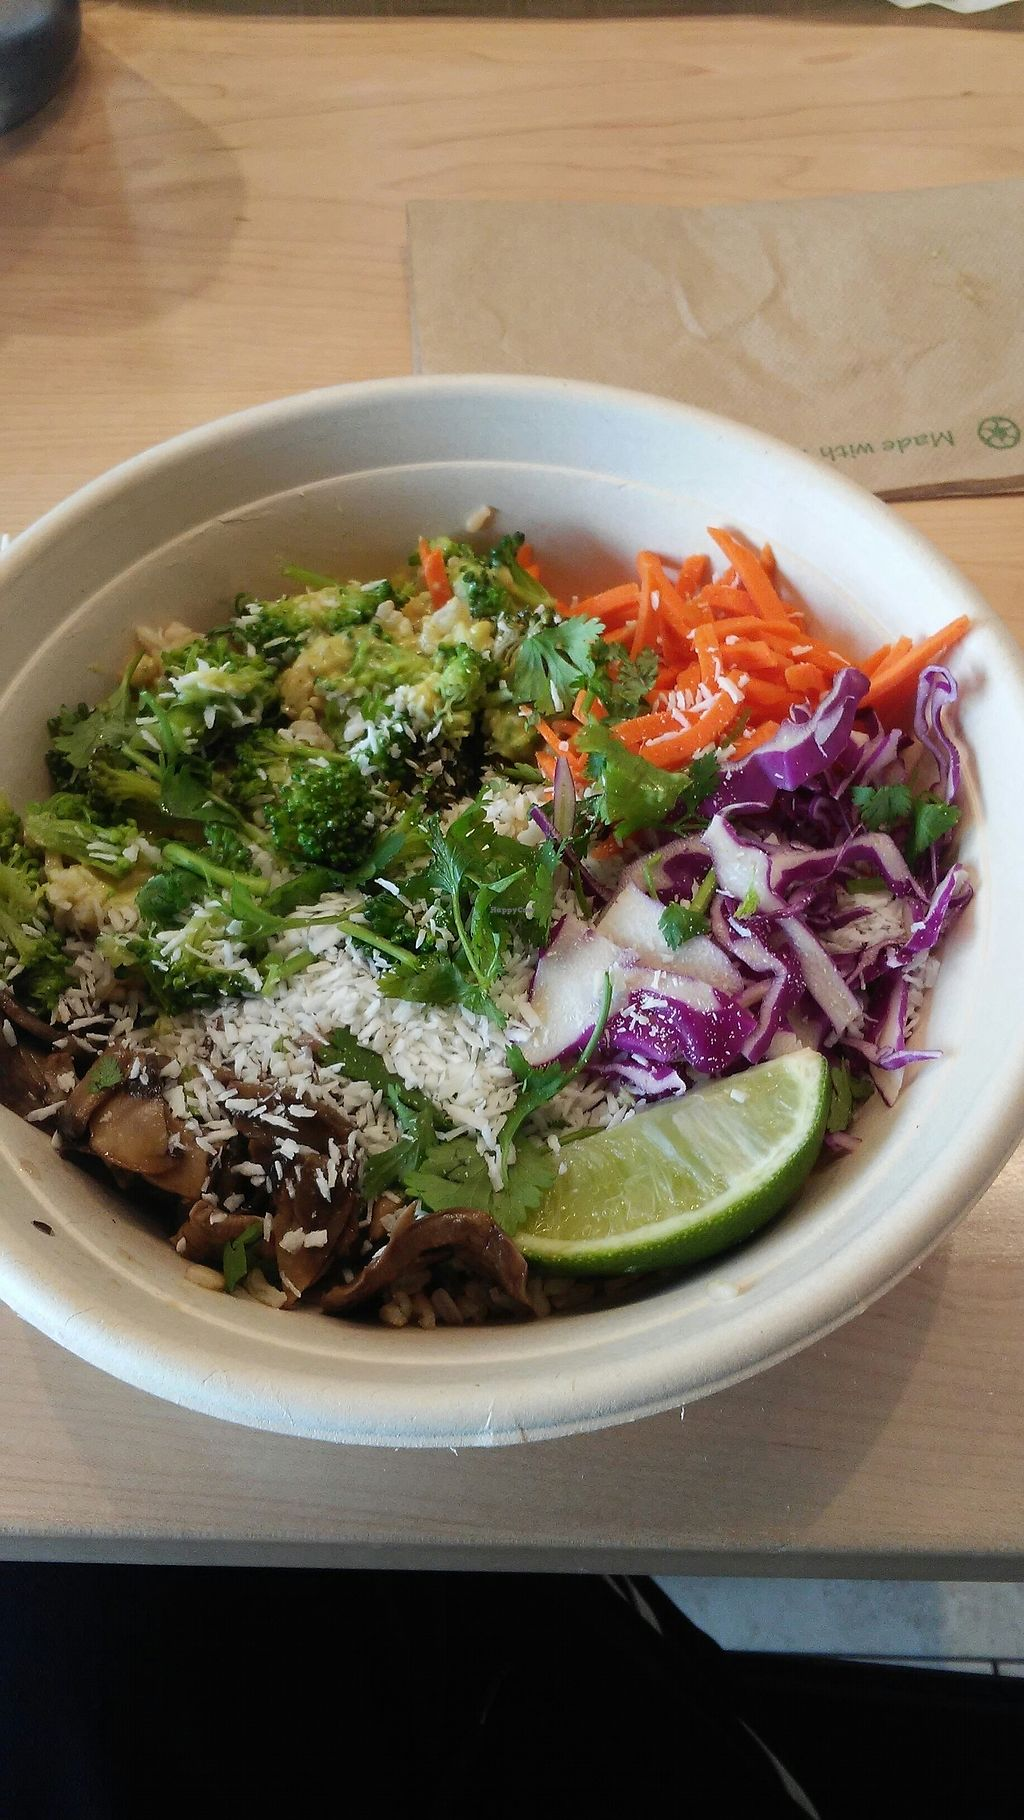 """Photo of freshii  by <a href=""""/members/profile/Totallynotvegan"""">Totallynotvegan</a> <br/>Bamboo bowl <br/> July 13, 2017  - <a href='/contact/abuse/image/88890/279659'>Report</a>"""